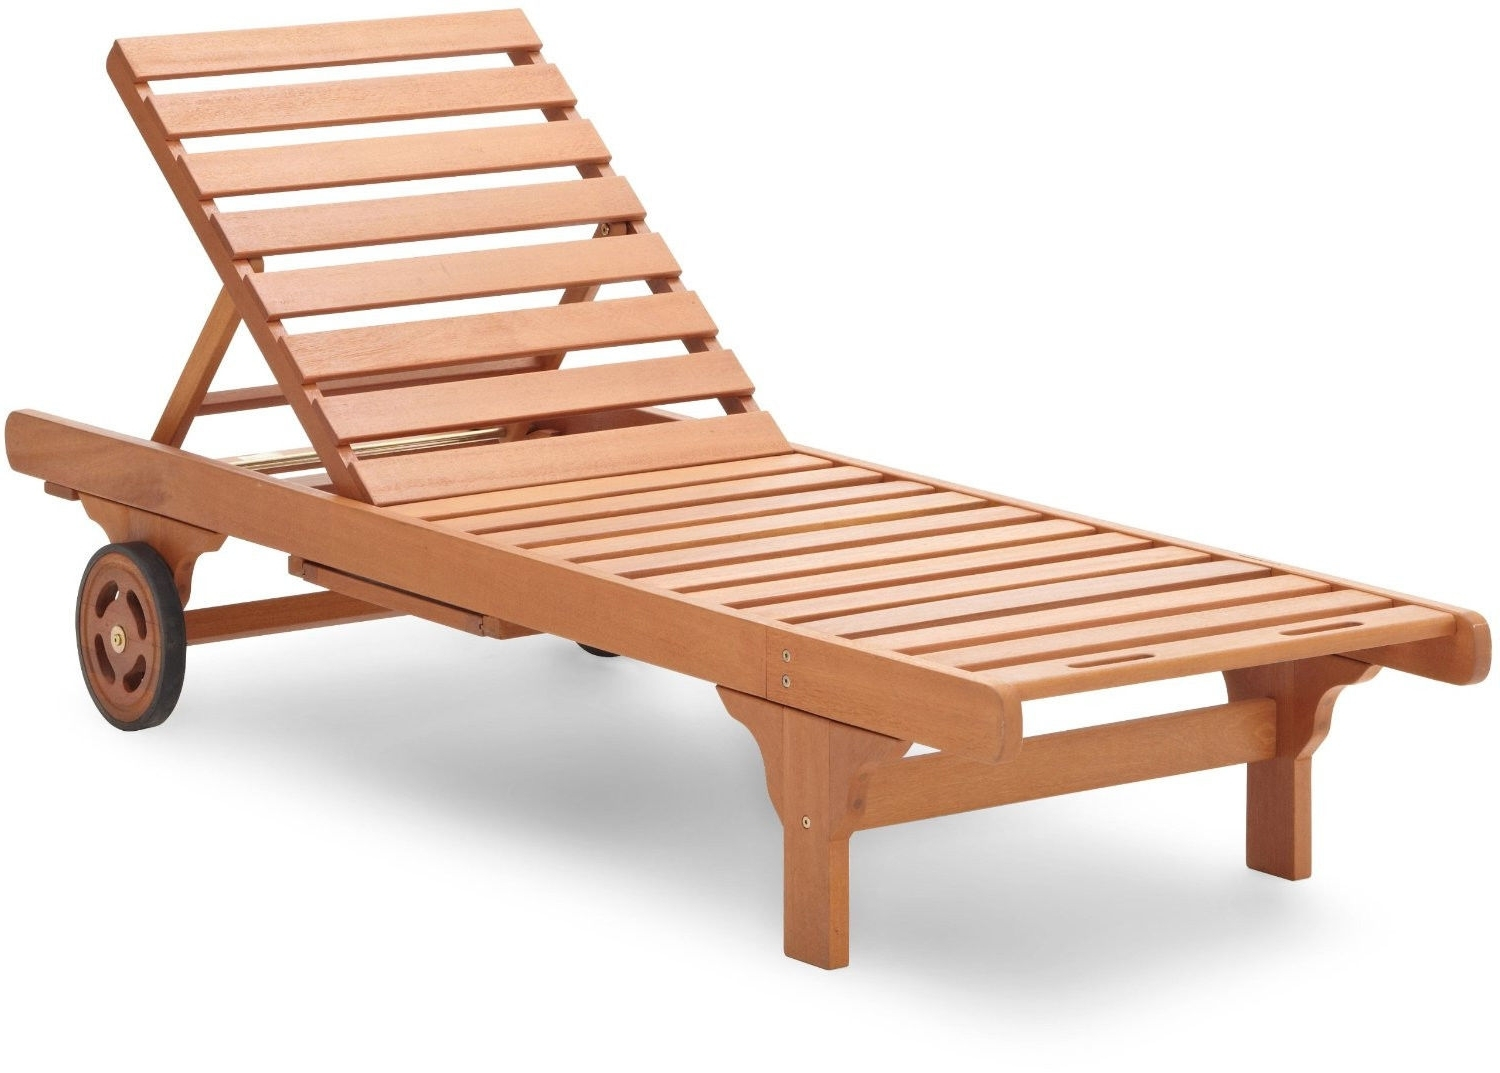 15 Best Diy Outdoor Chaise Lounge Chairs